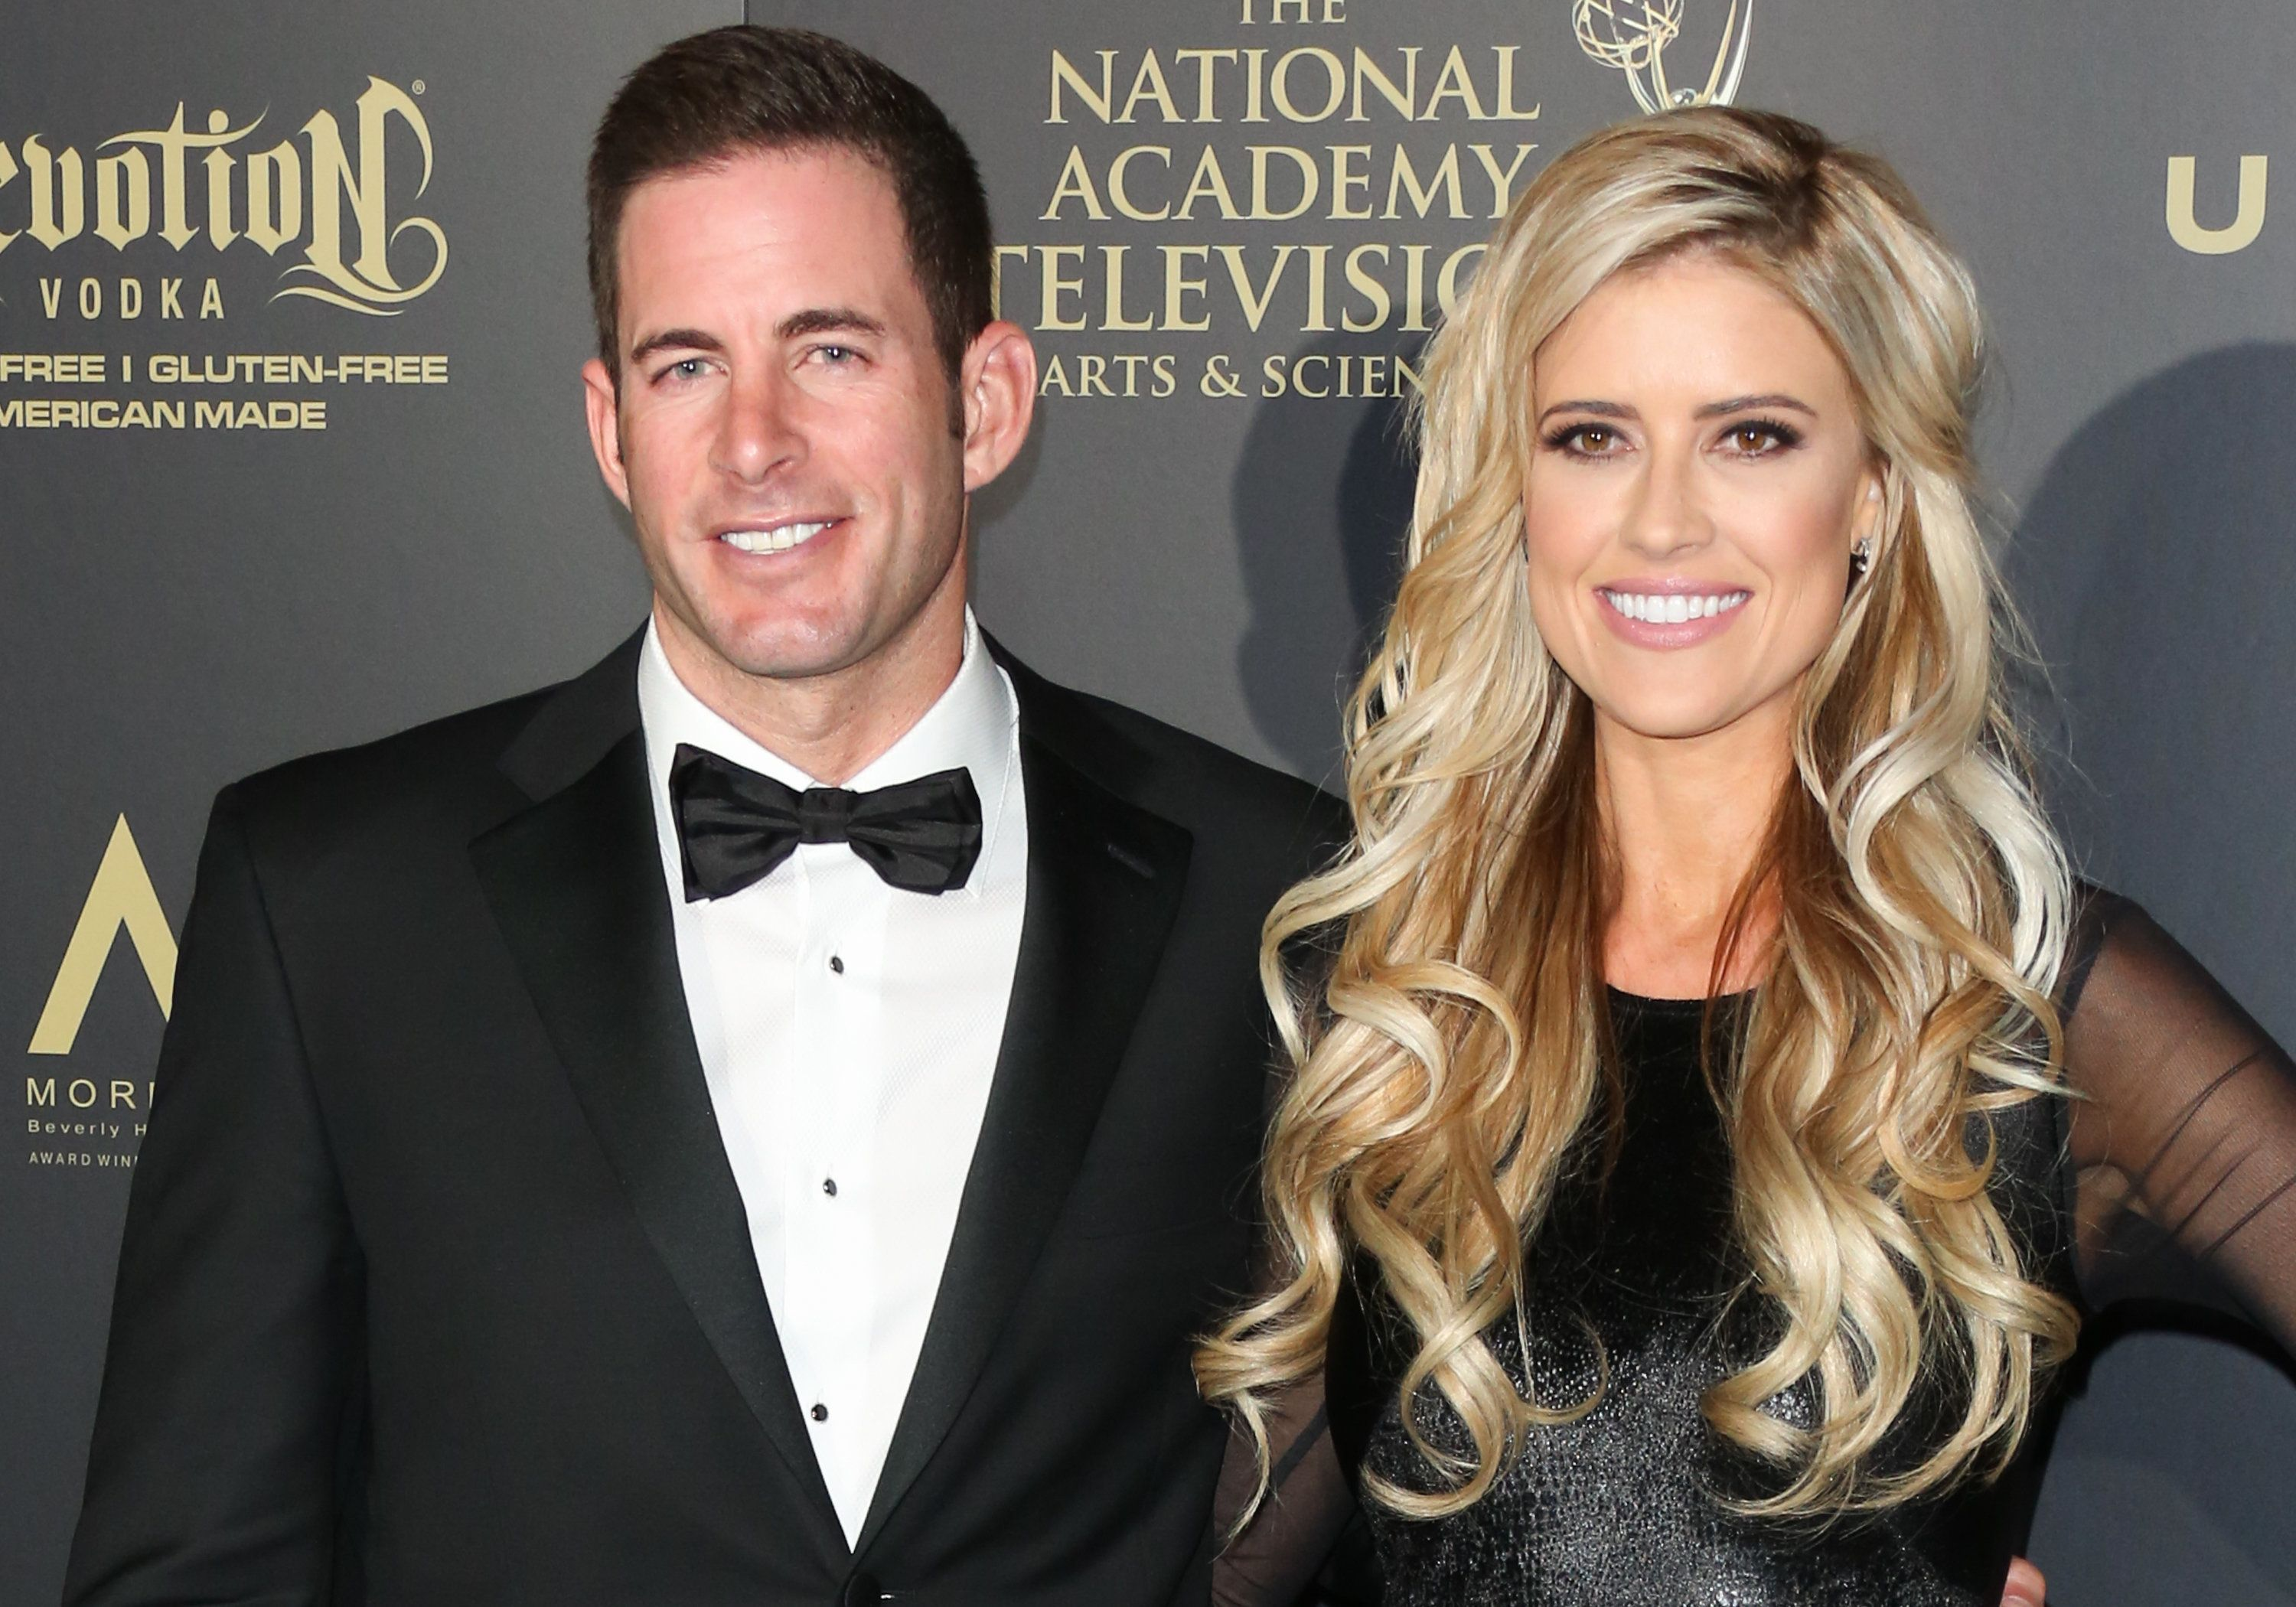 Tarek Christina El Moussa attend the press room for the 44th annual Daytime Emmy Awards on April 30 in Pasadena, California.